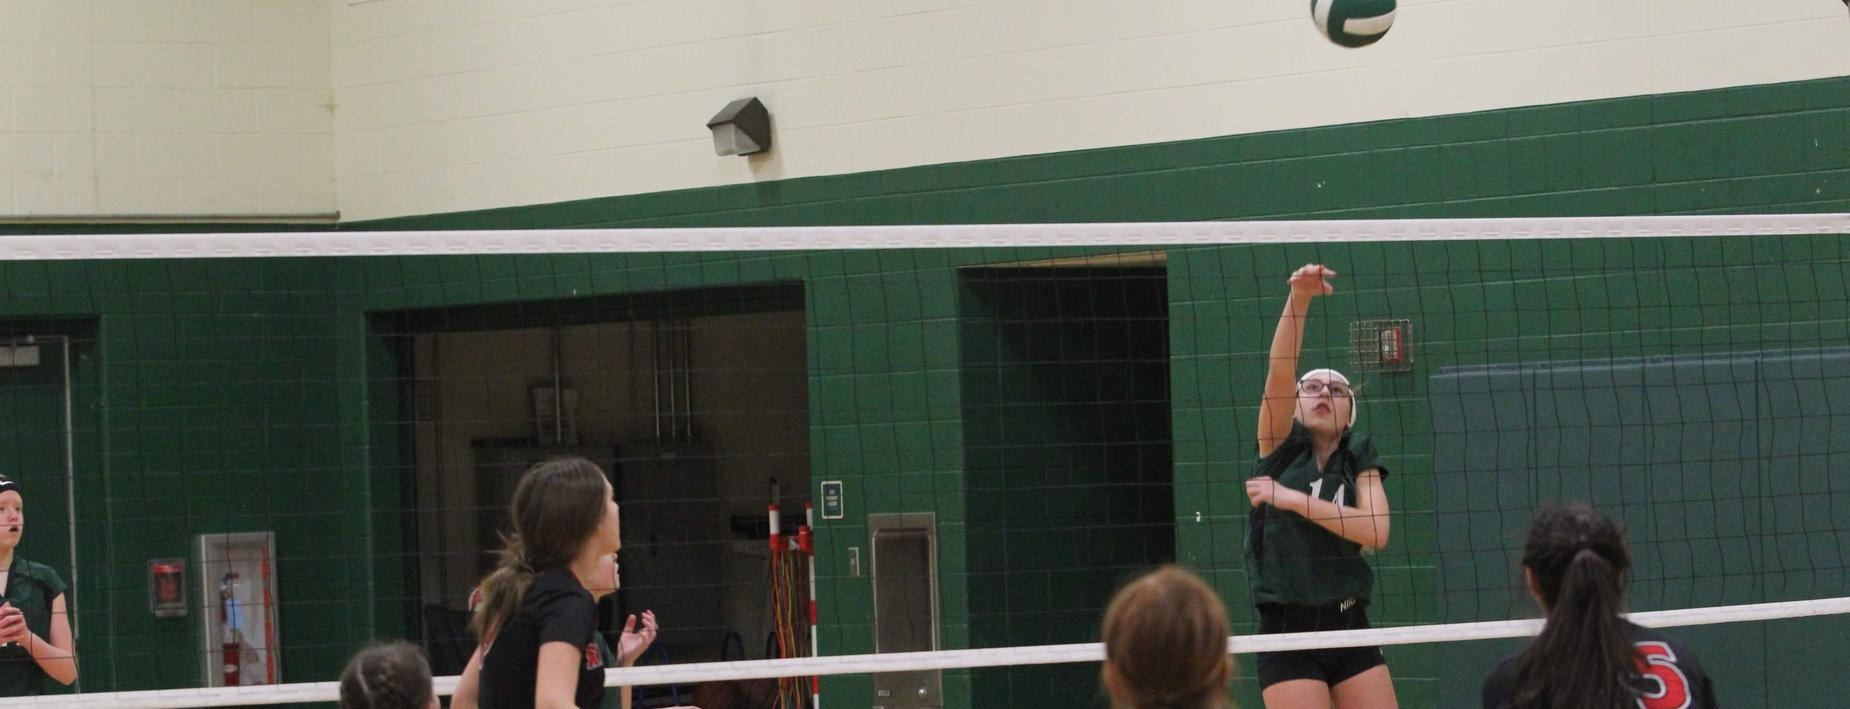 Volleyball at CCMS